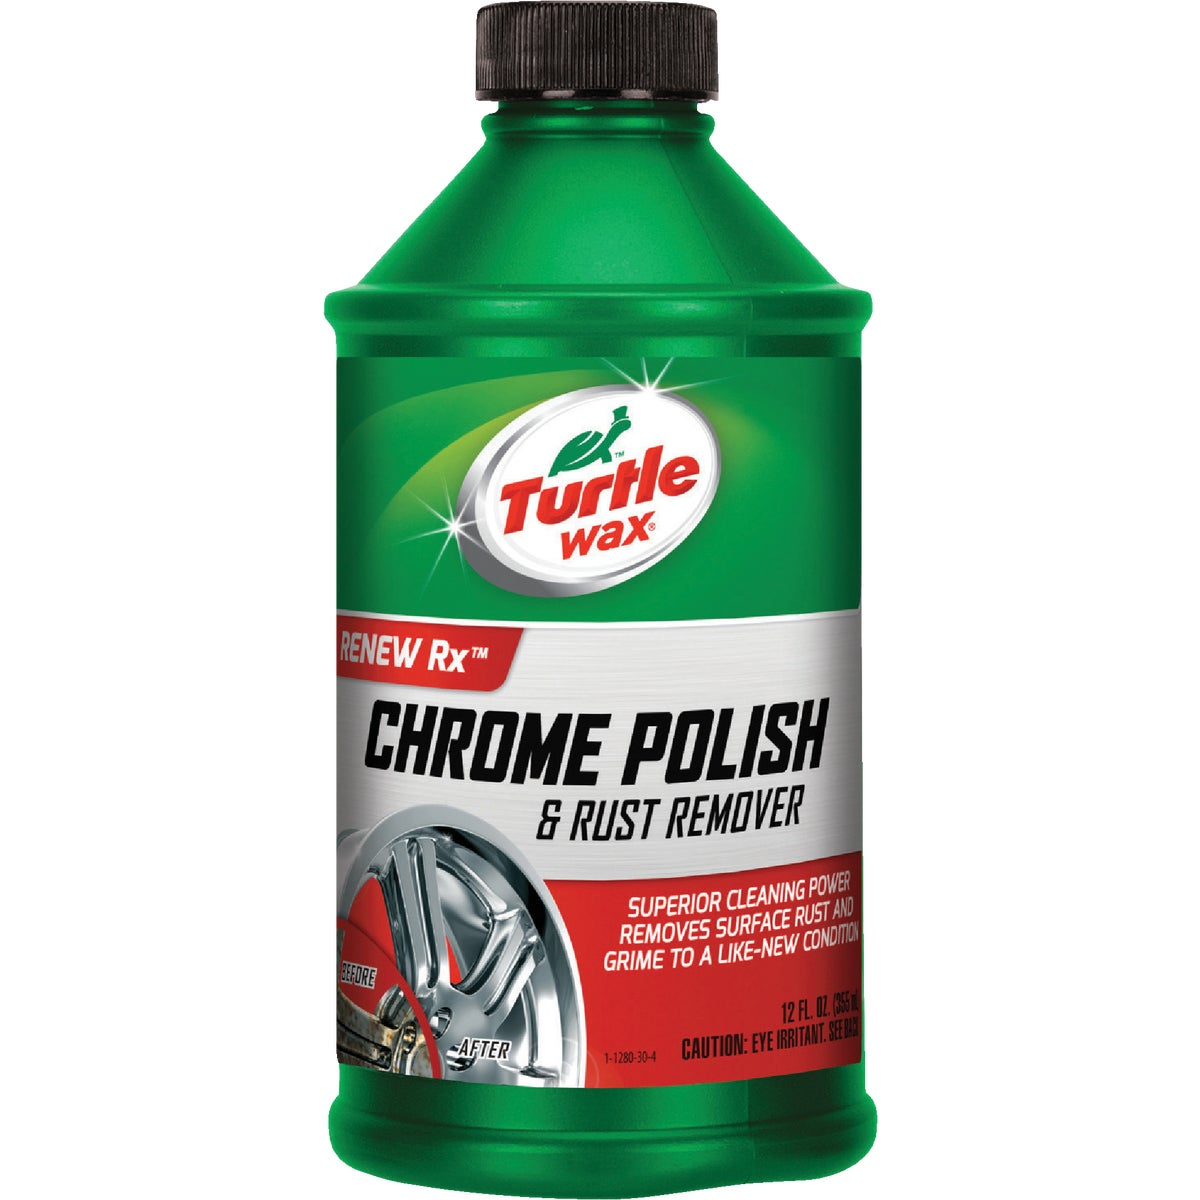 12OZ CHROME POLISH - T280RA by Turtle Wax Inc